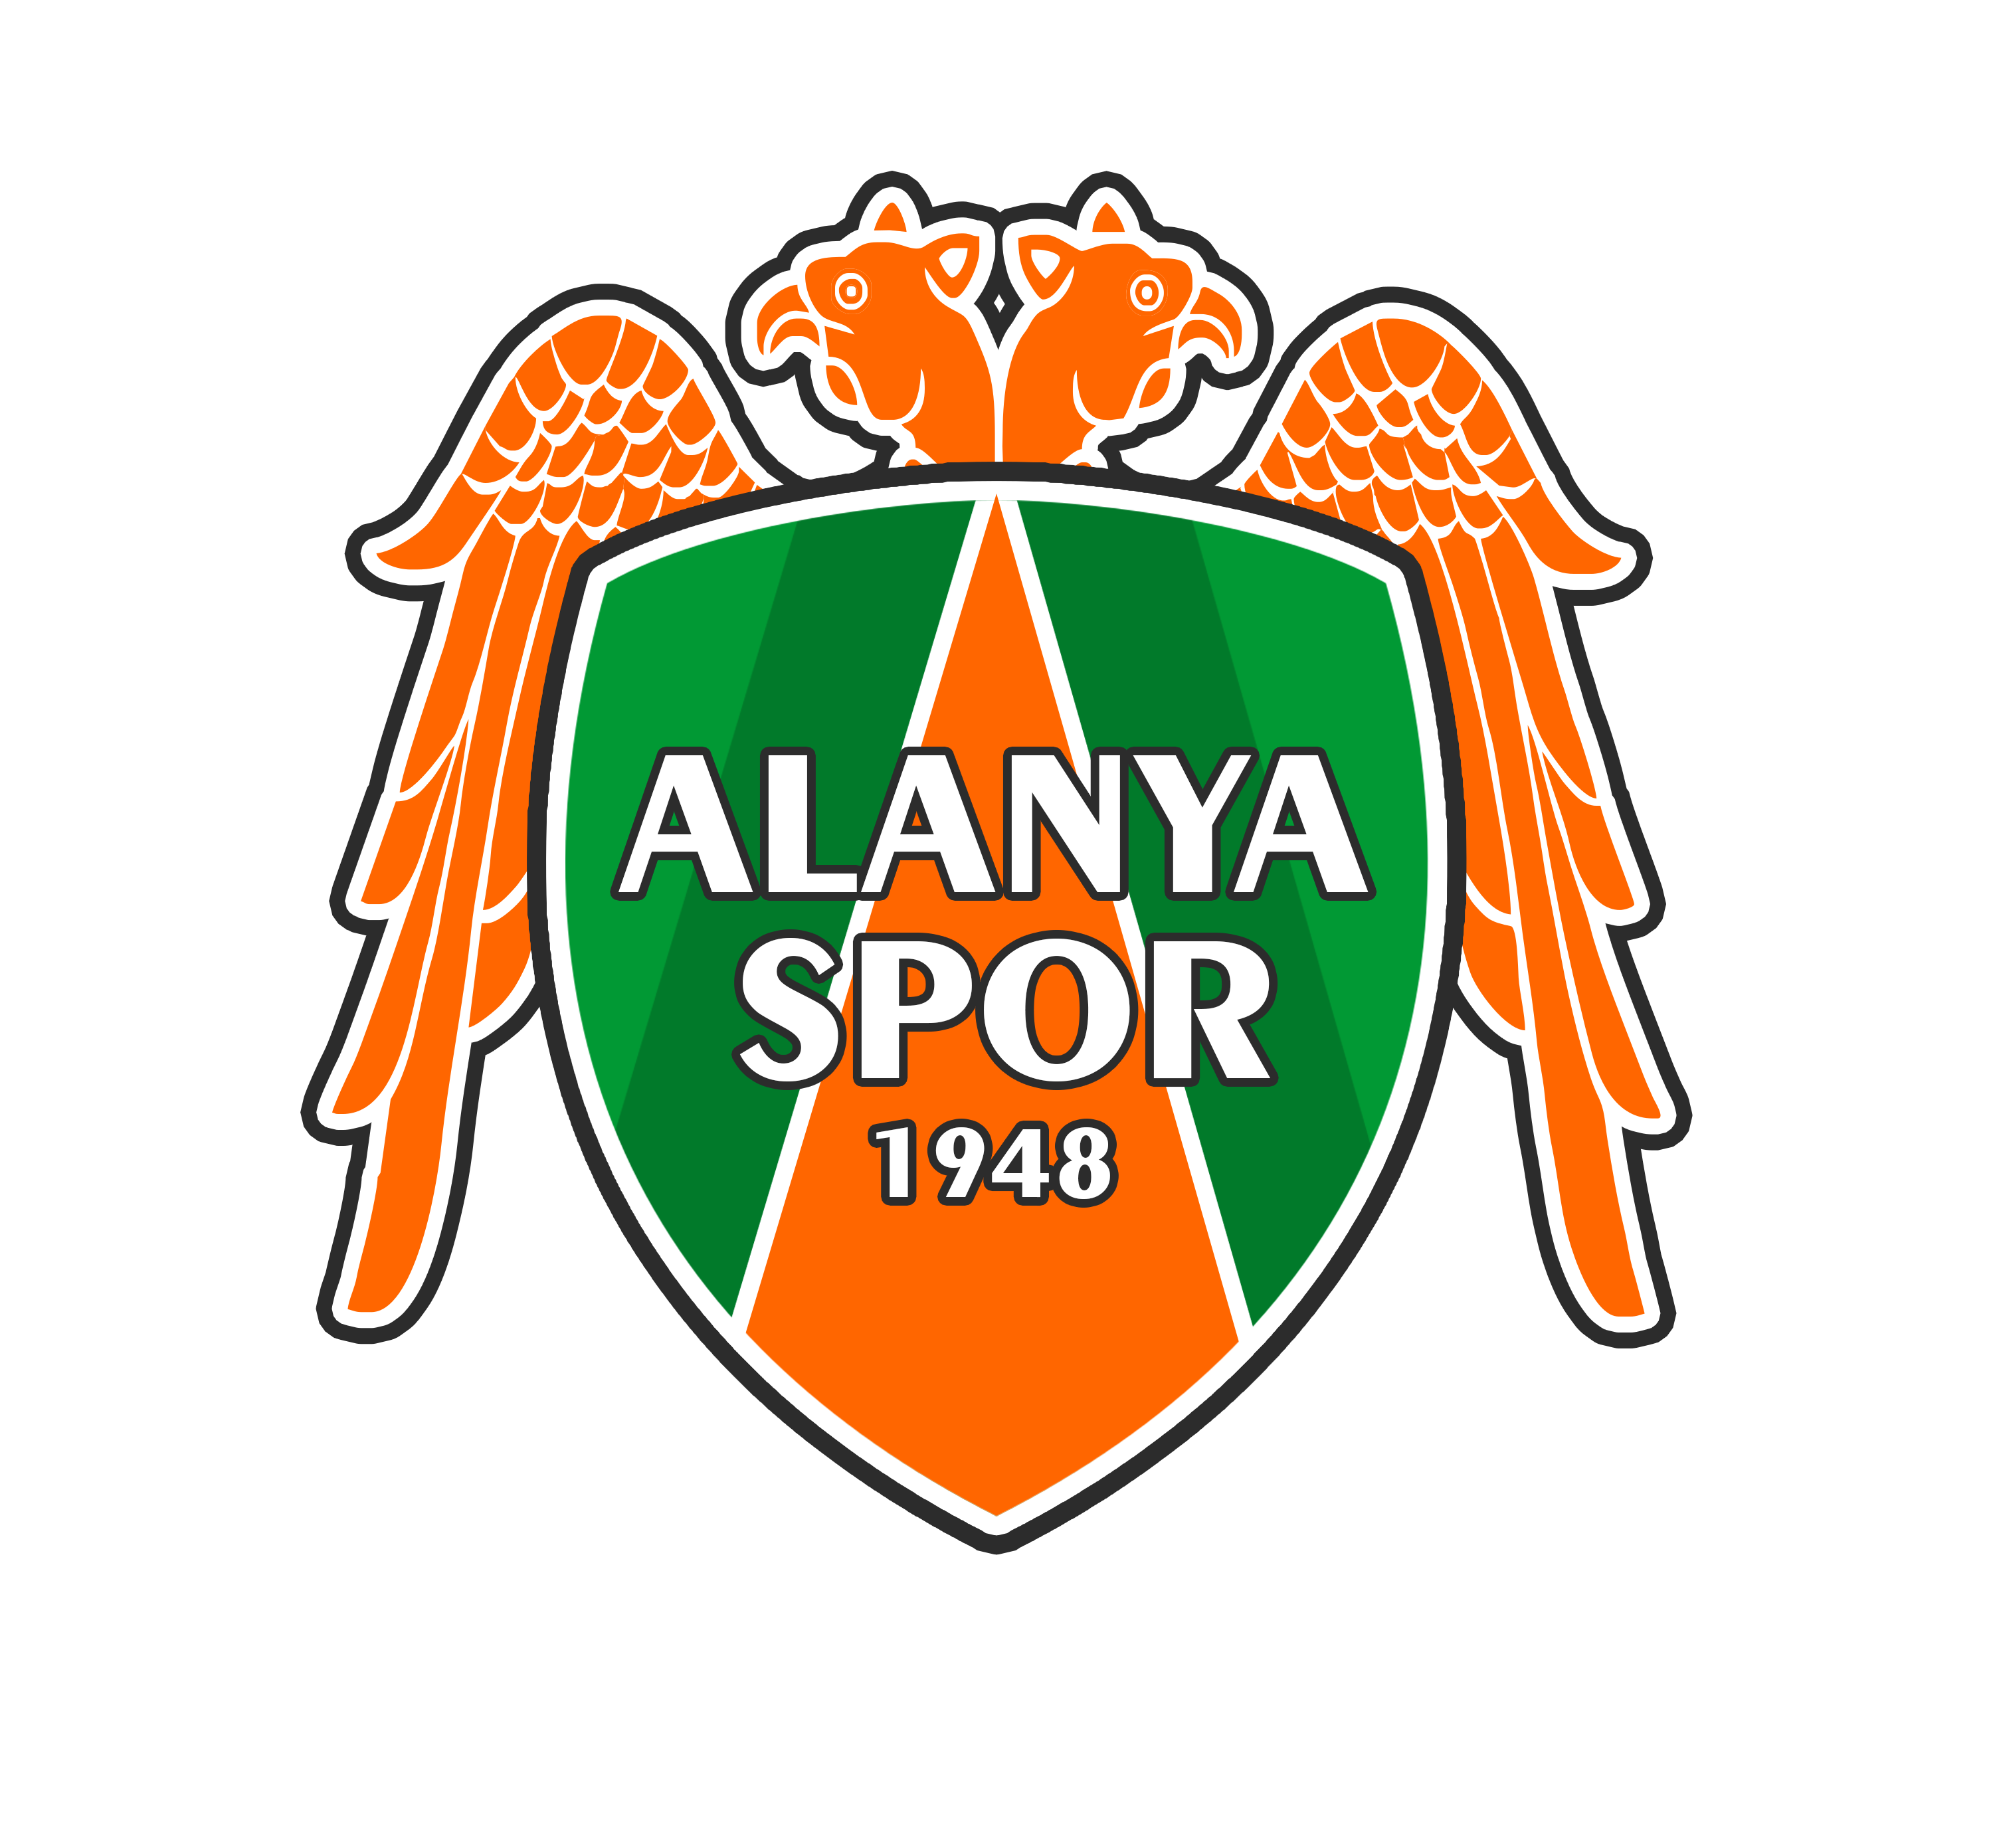 Alanyaspor Vs Besiktas PREDICTION 23 01 2017